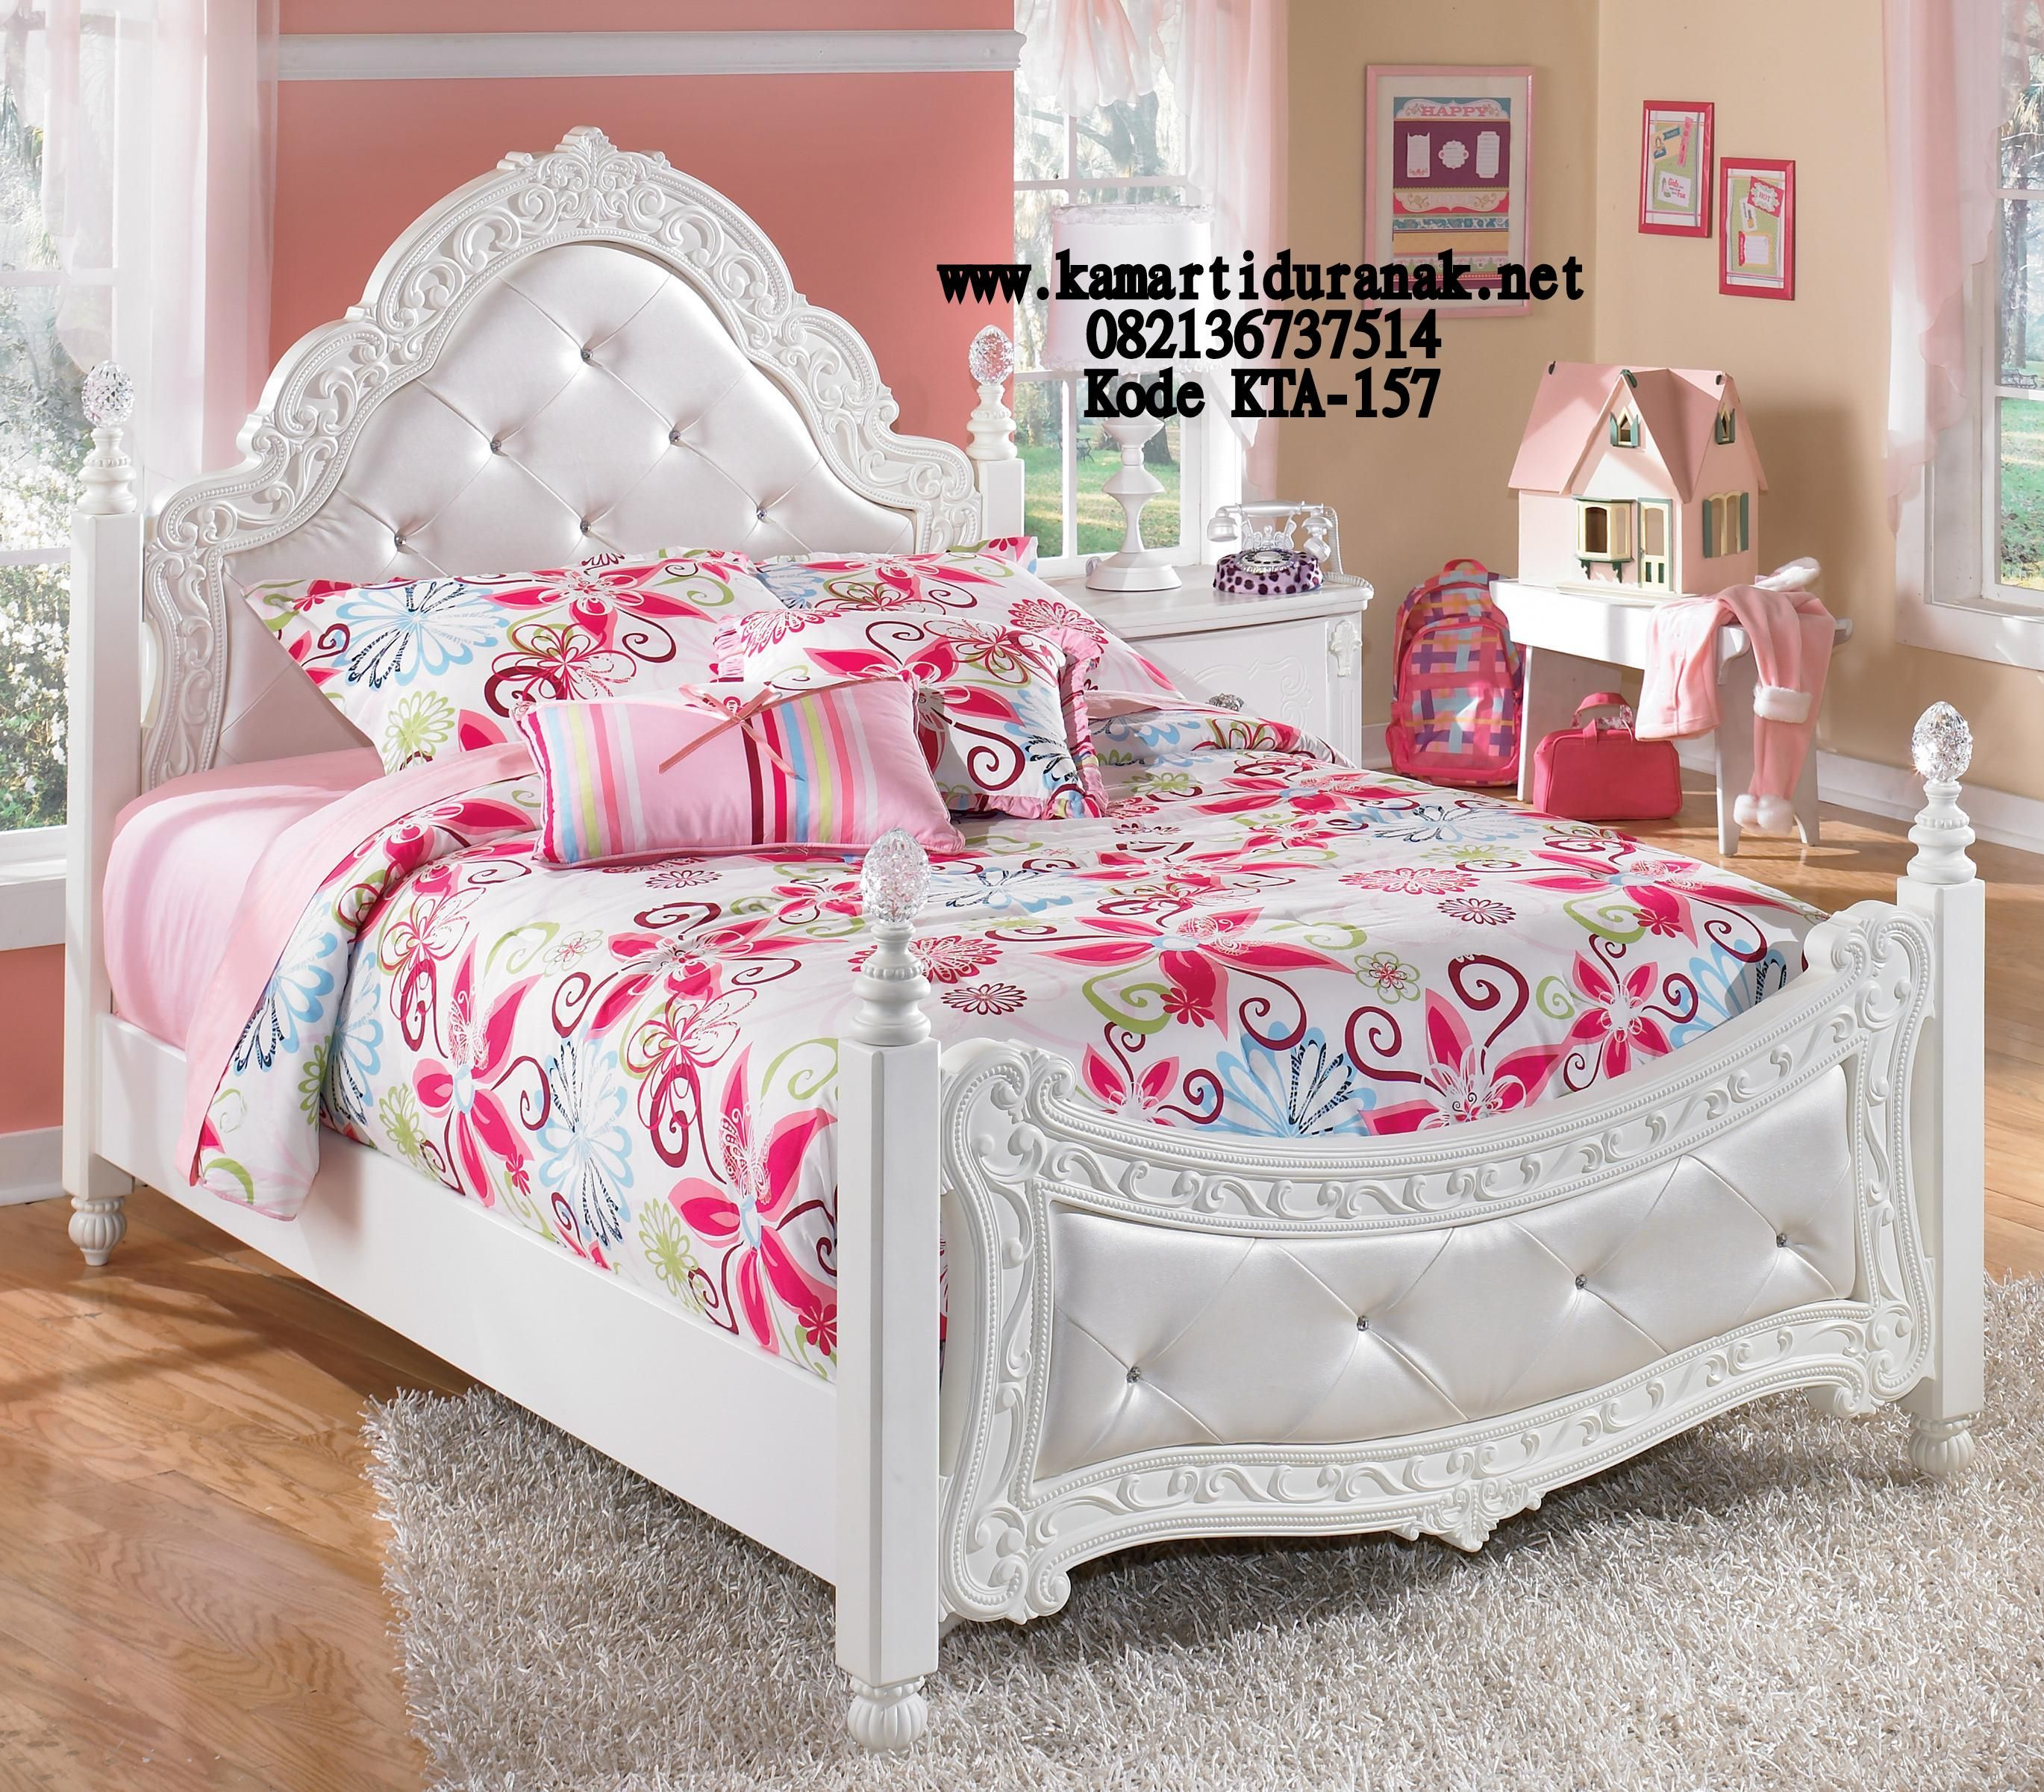 Signature Design By Ashley Exquisite Poster Bed  Jcpenney